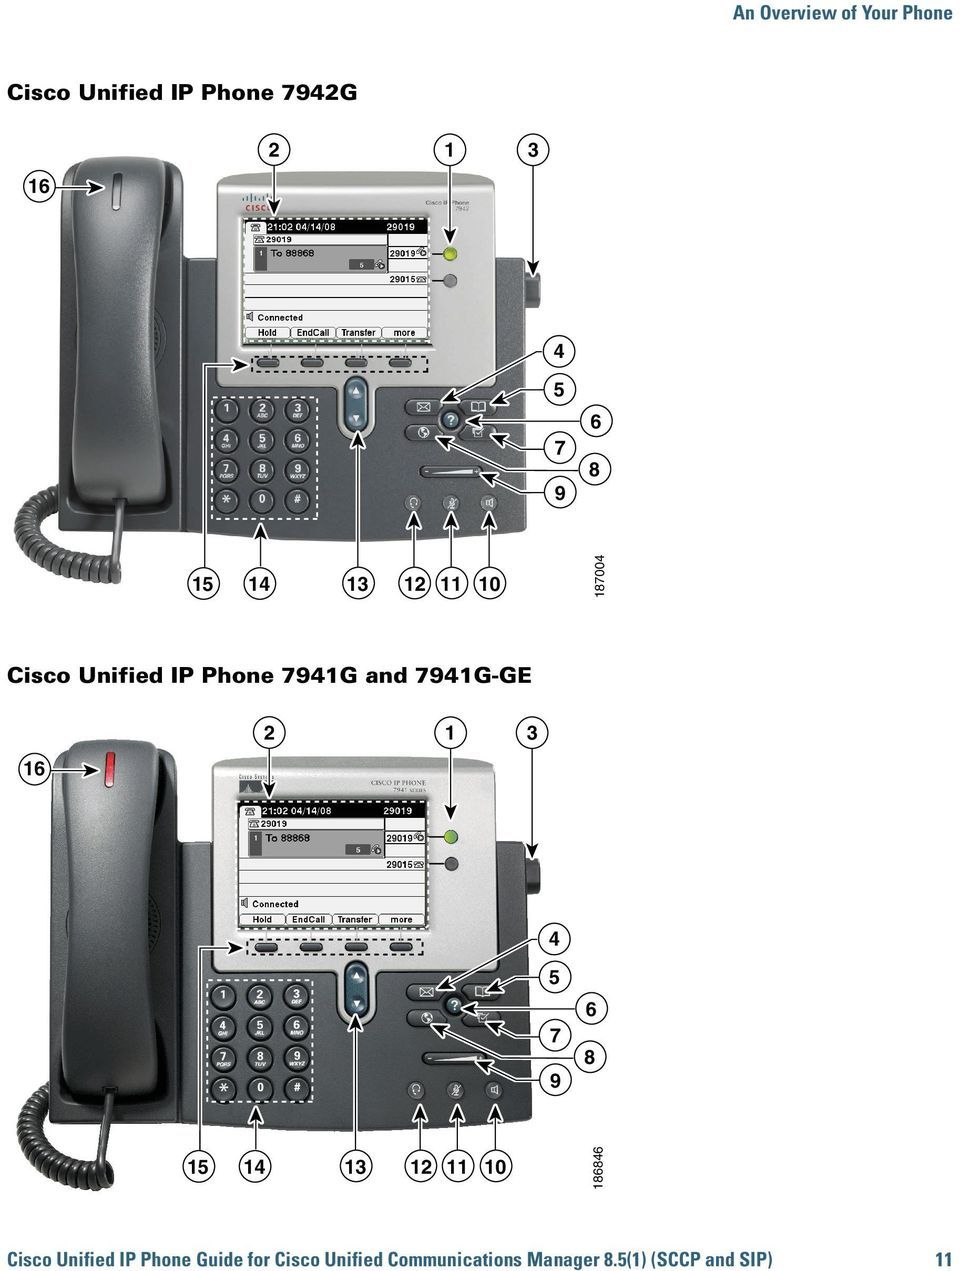 2 1 3 16 1 4 5 7 9 6 8 15 14 13 12 11 10 186846 Cisco Unified IP Phone